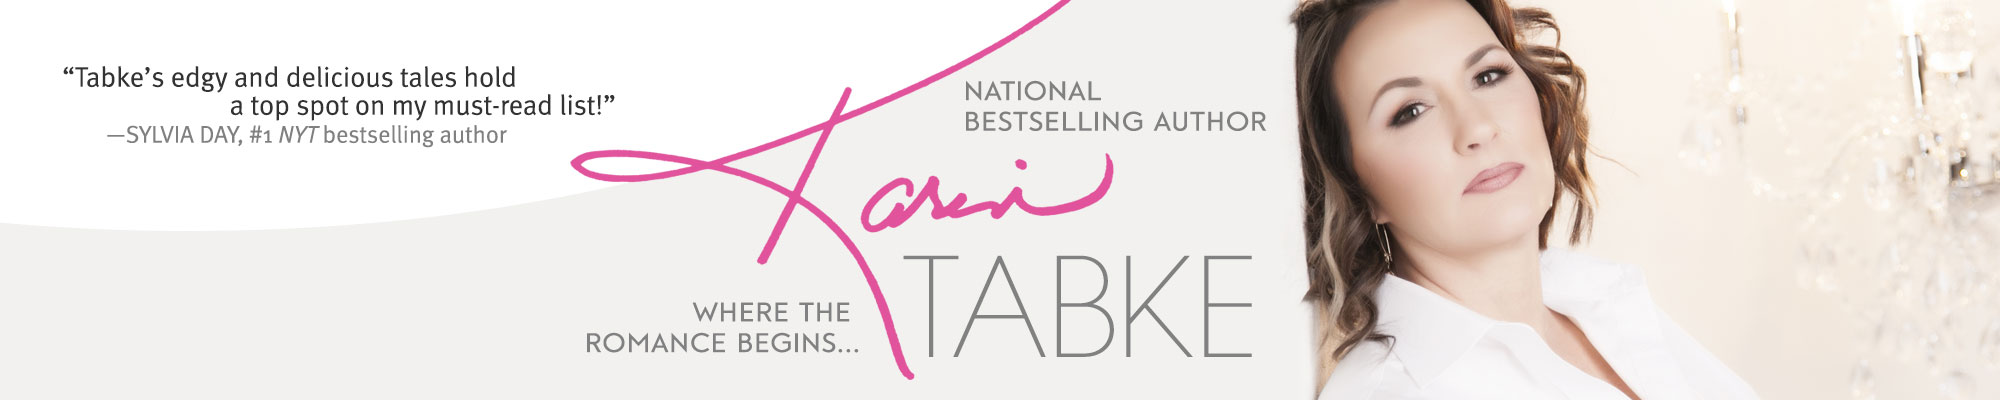 Karin Tabke | National Bestselling Author